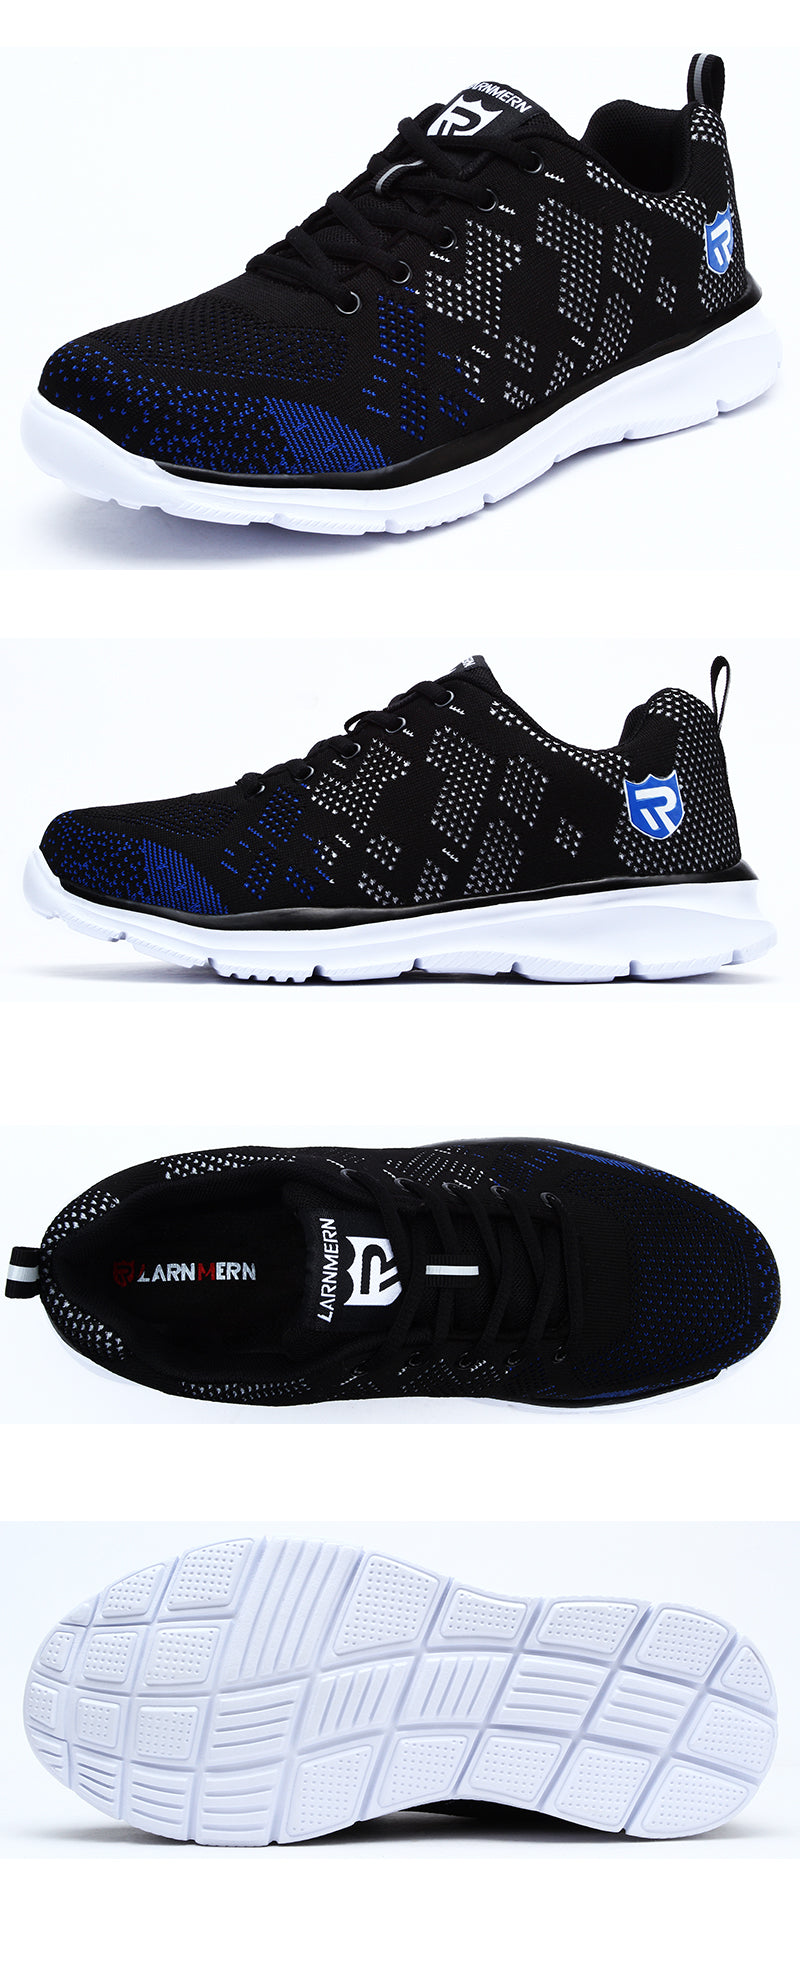 e76cf5e432c LARNMERN Lightweight Breathable Men Safety Shoes Steel Toe Work Shoes For  Men Anti-smashing Construction Sneaker With Reflective